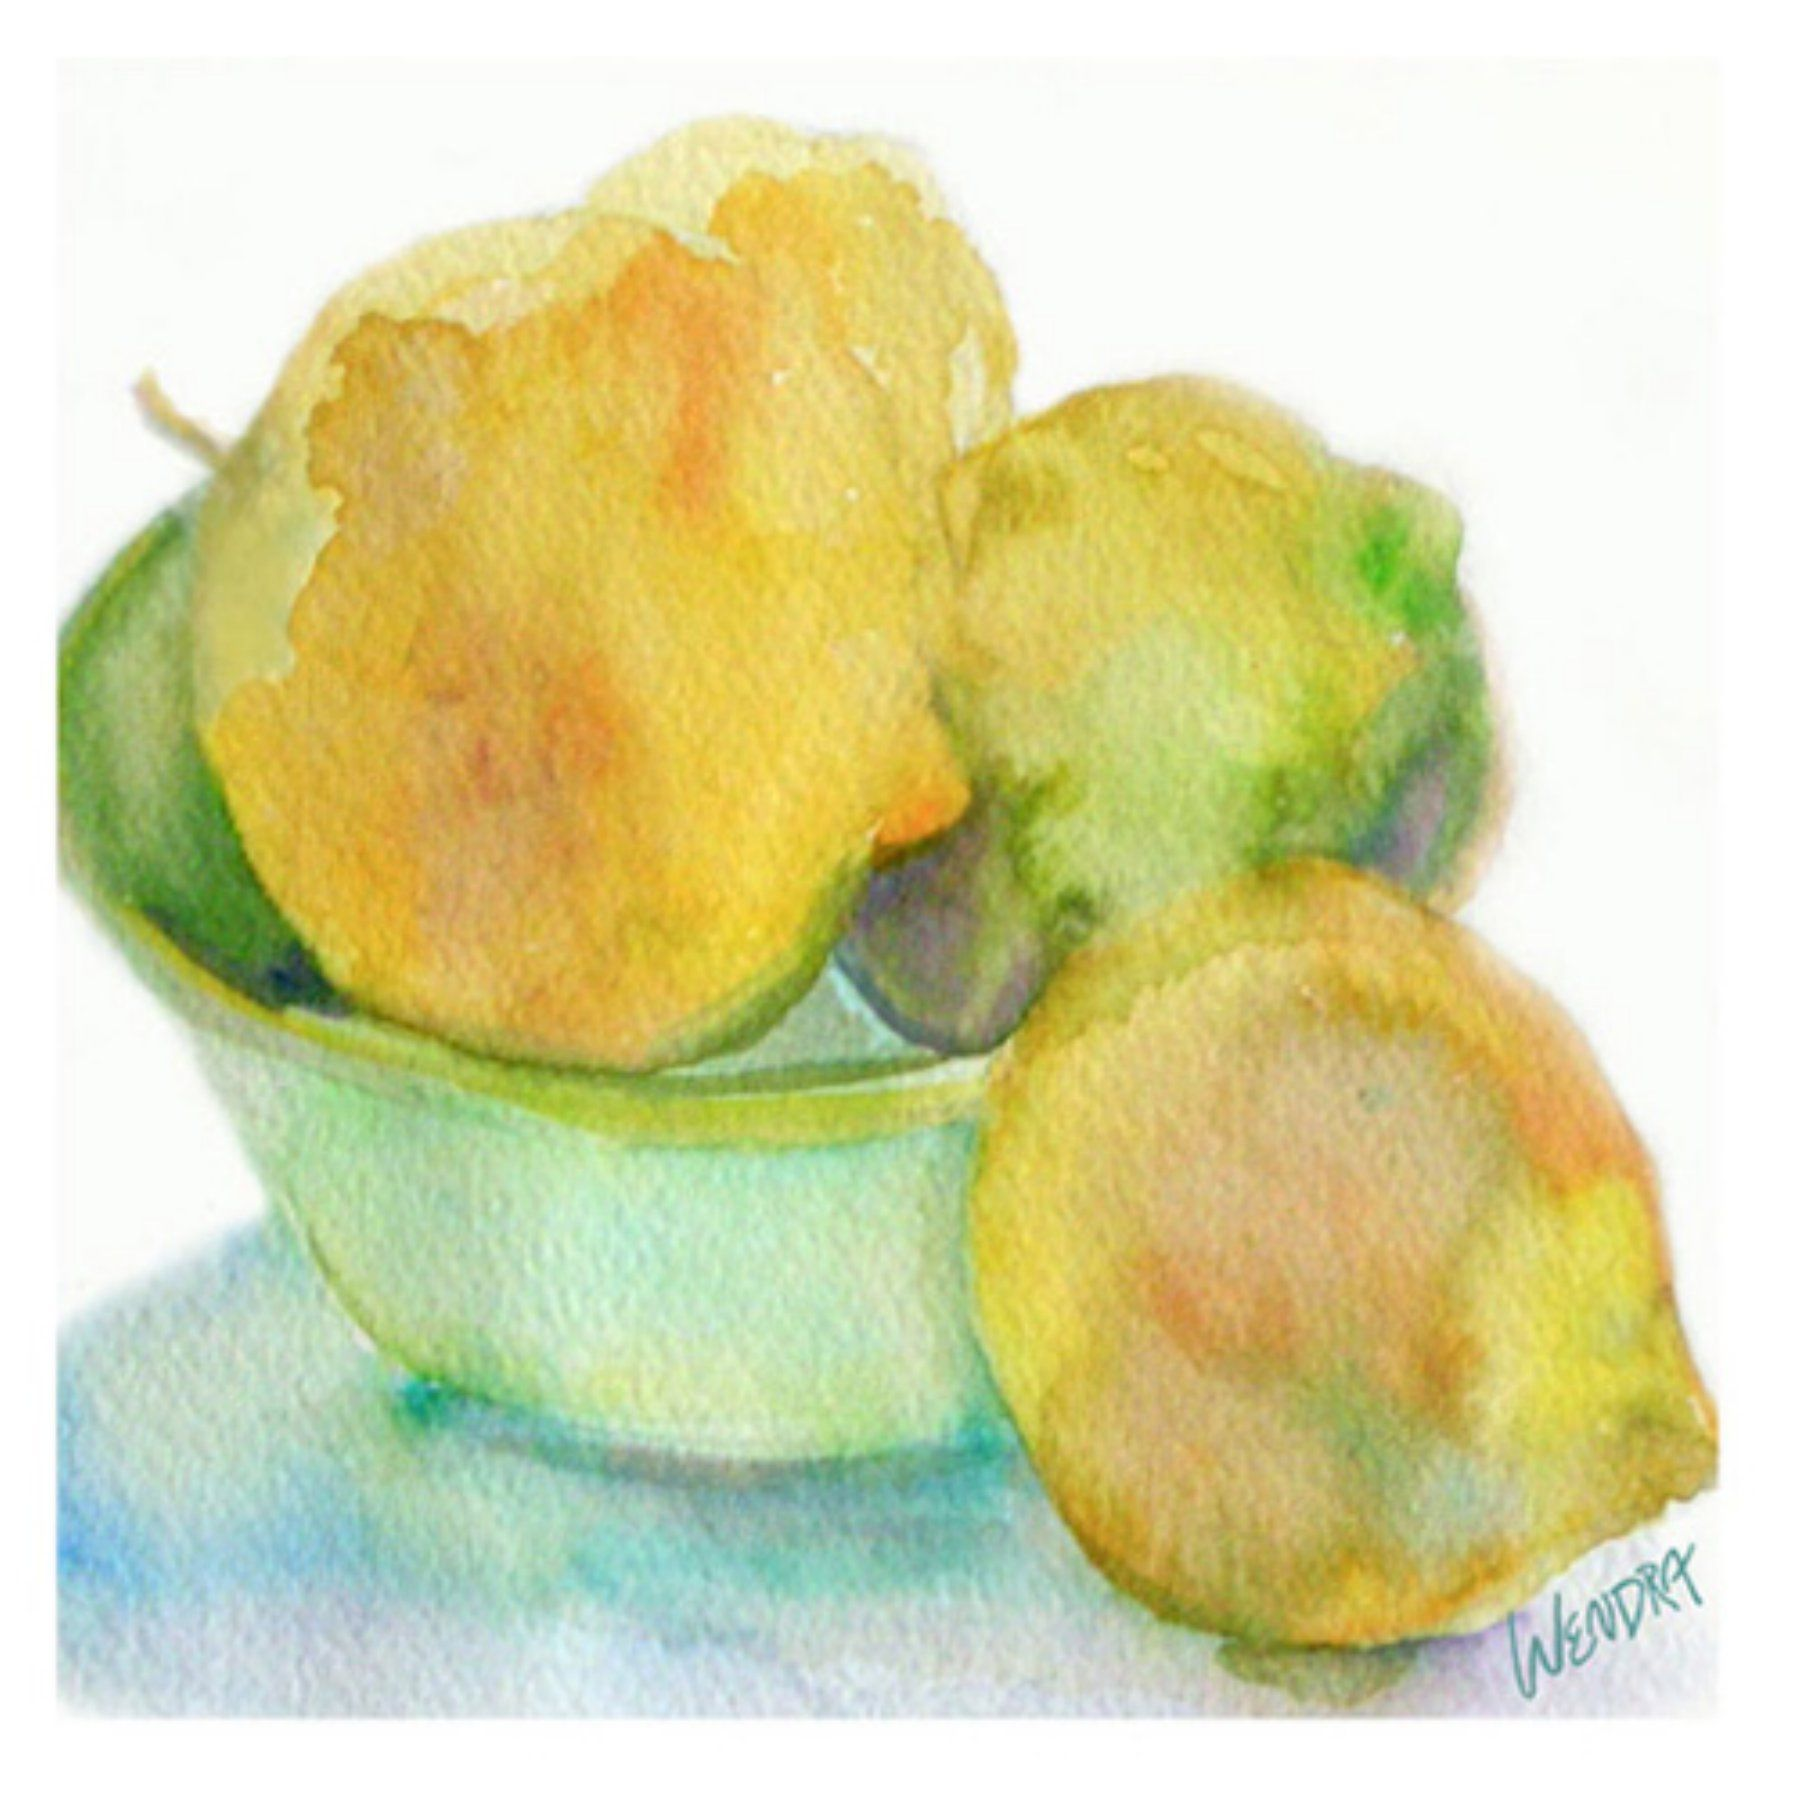 Lemons Canvas Wall Art by Wendra - WL023-C1818GG | Canvases and Products